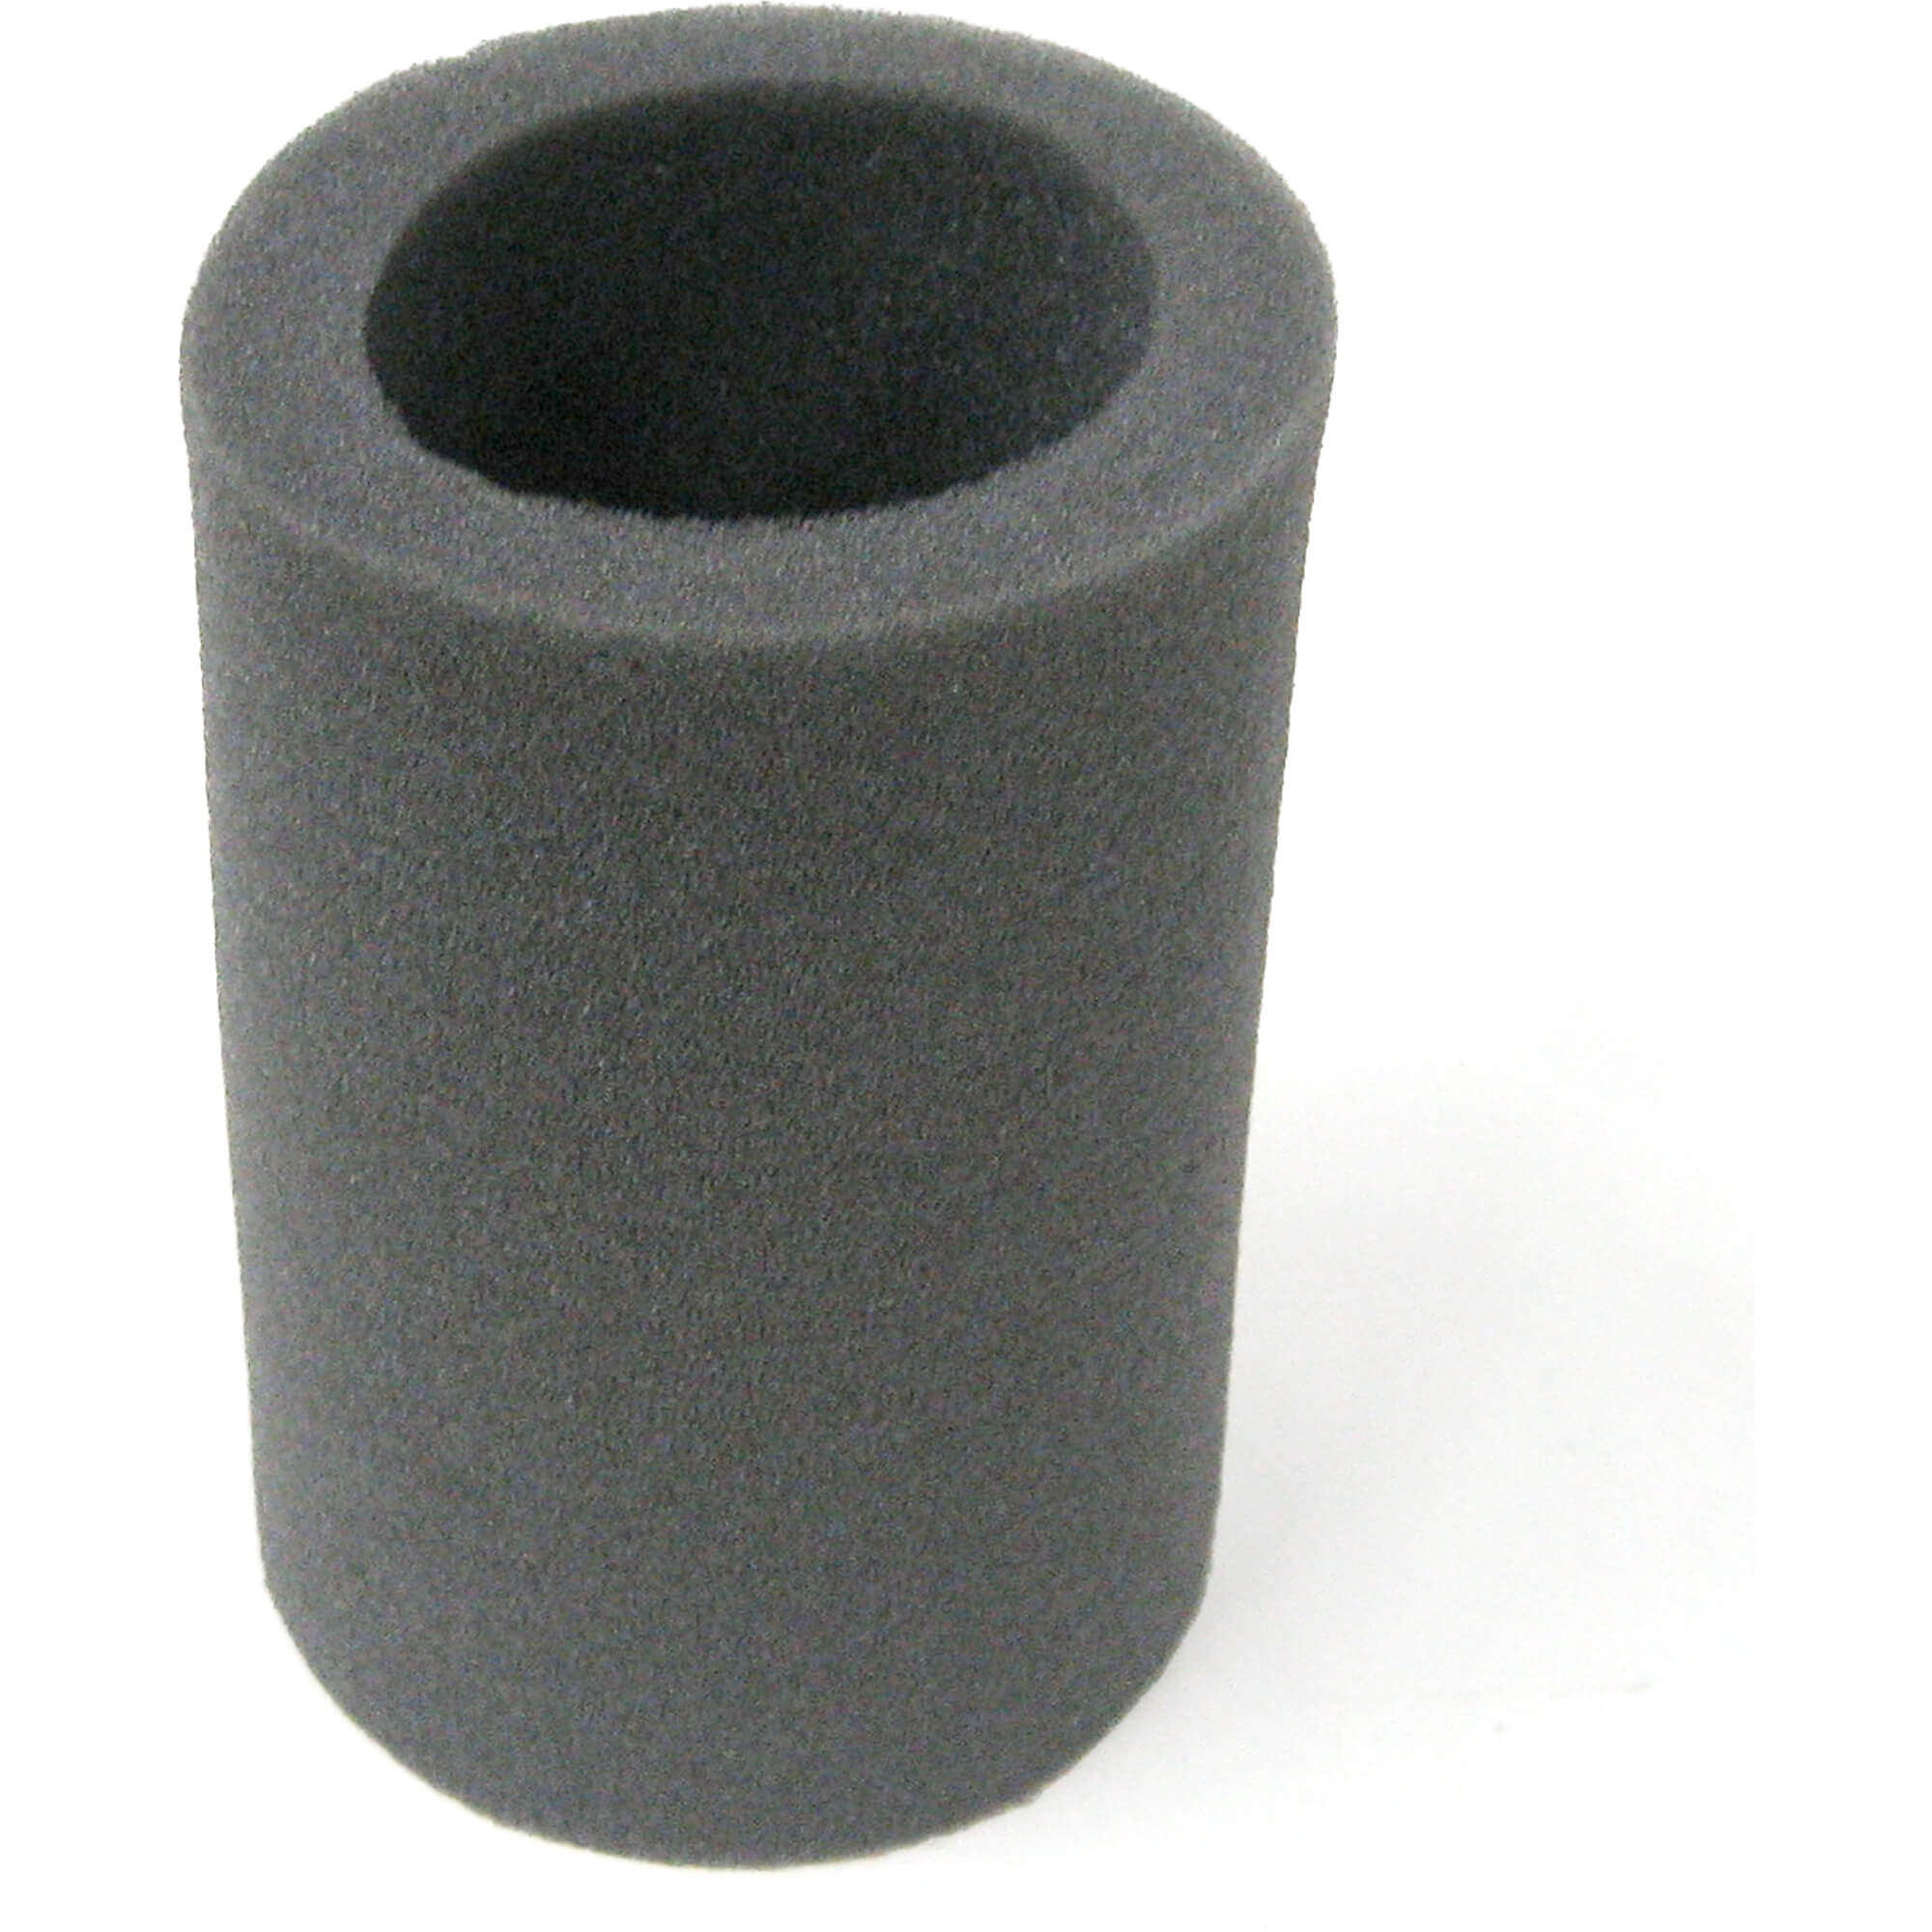 MD2030 D2 replaces: 3580509 MD2010 Air Filter Insert for Volvo Penta MD2020